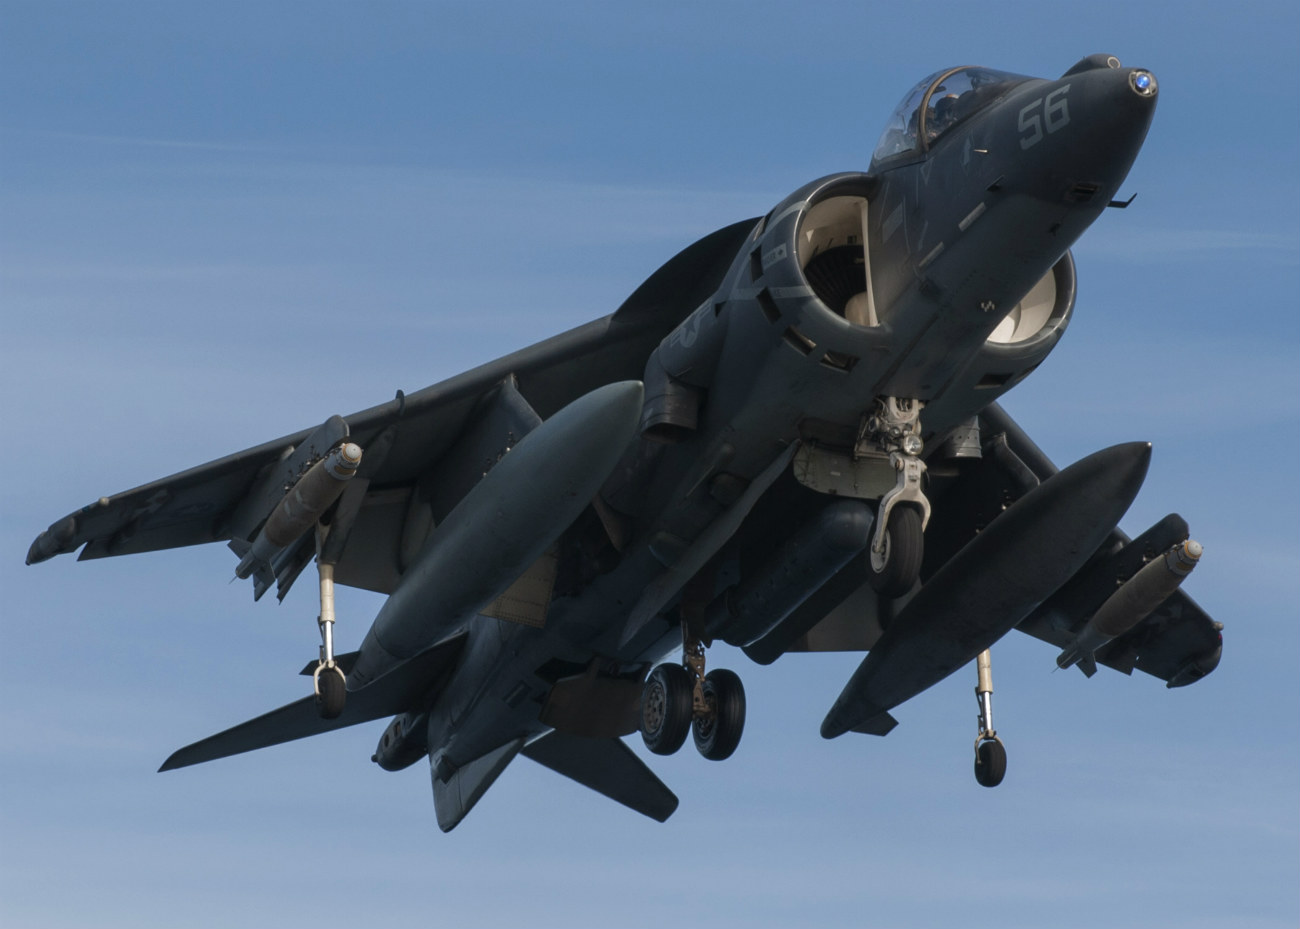 AV-8B Harrier vertical landing